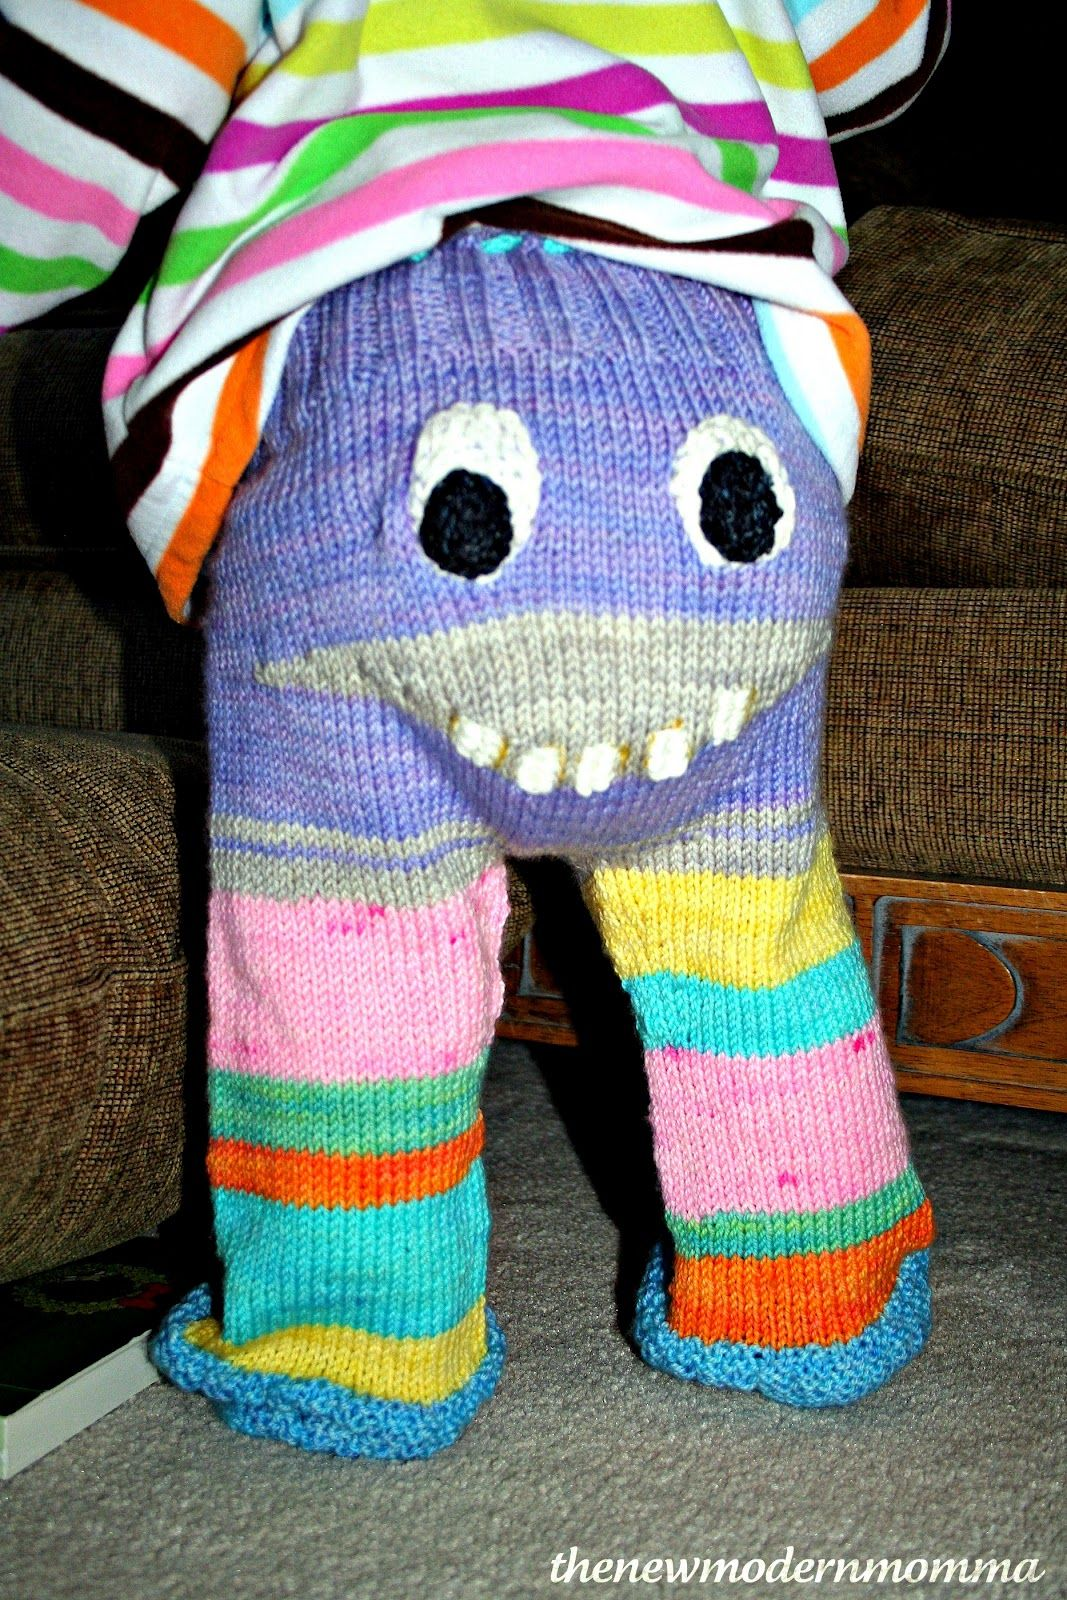 Todays outfit channelled a young punky brewster if you grew up knitted monster pants pattern is super cute bankloansurffo Image collections